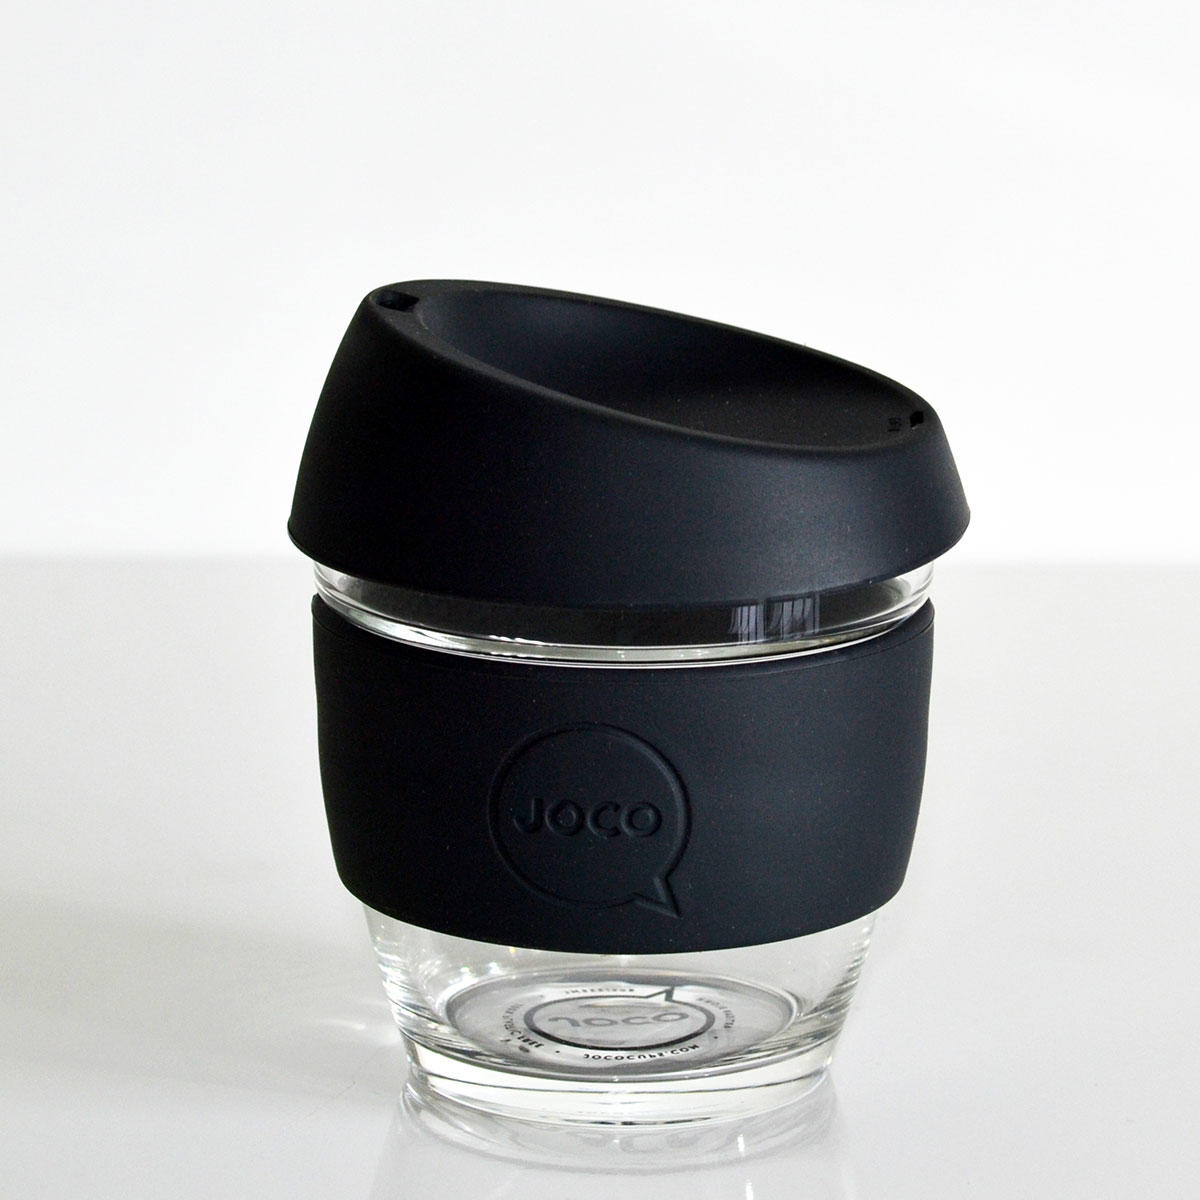 JOCO Cup 8oz Black Glass Coffee Cup